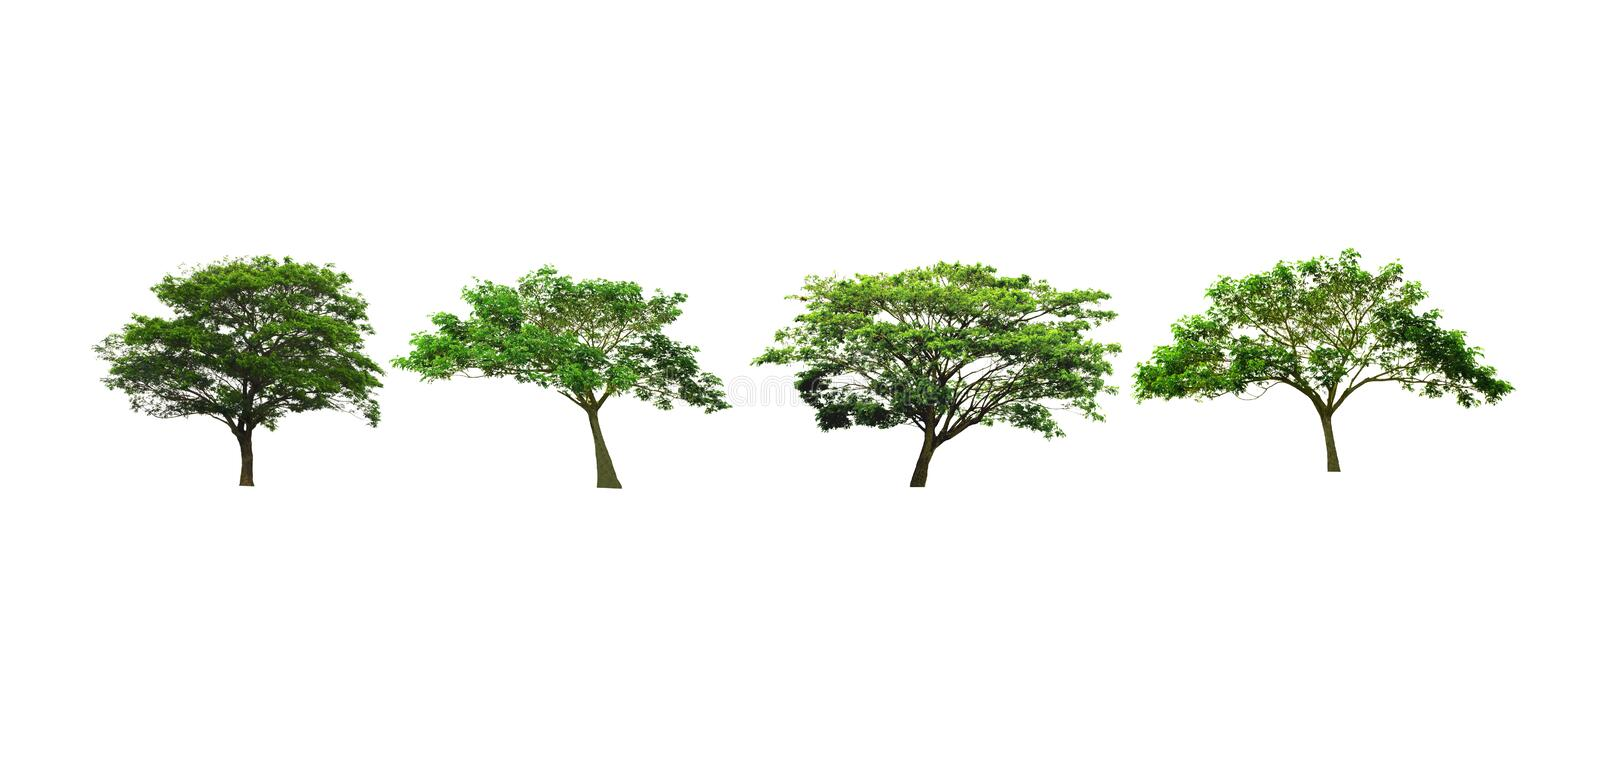 Silk tree or East Indian walnut tree or rain tree isolated on white background. Set of Rain Tree or East Indian walnut tree or silk tree isolated on white stock photography